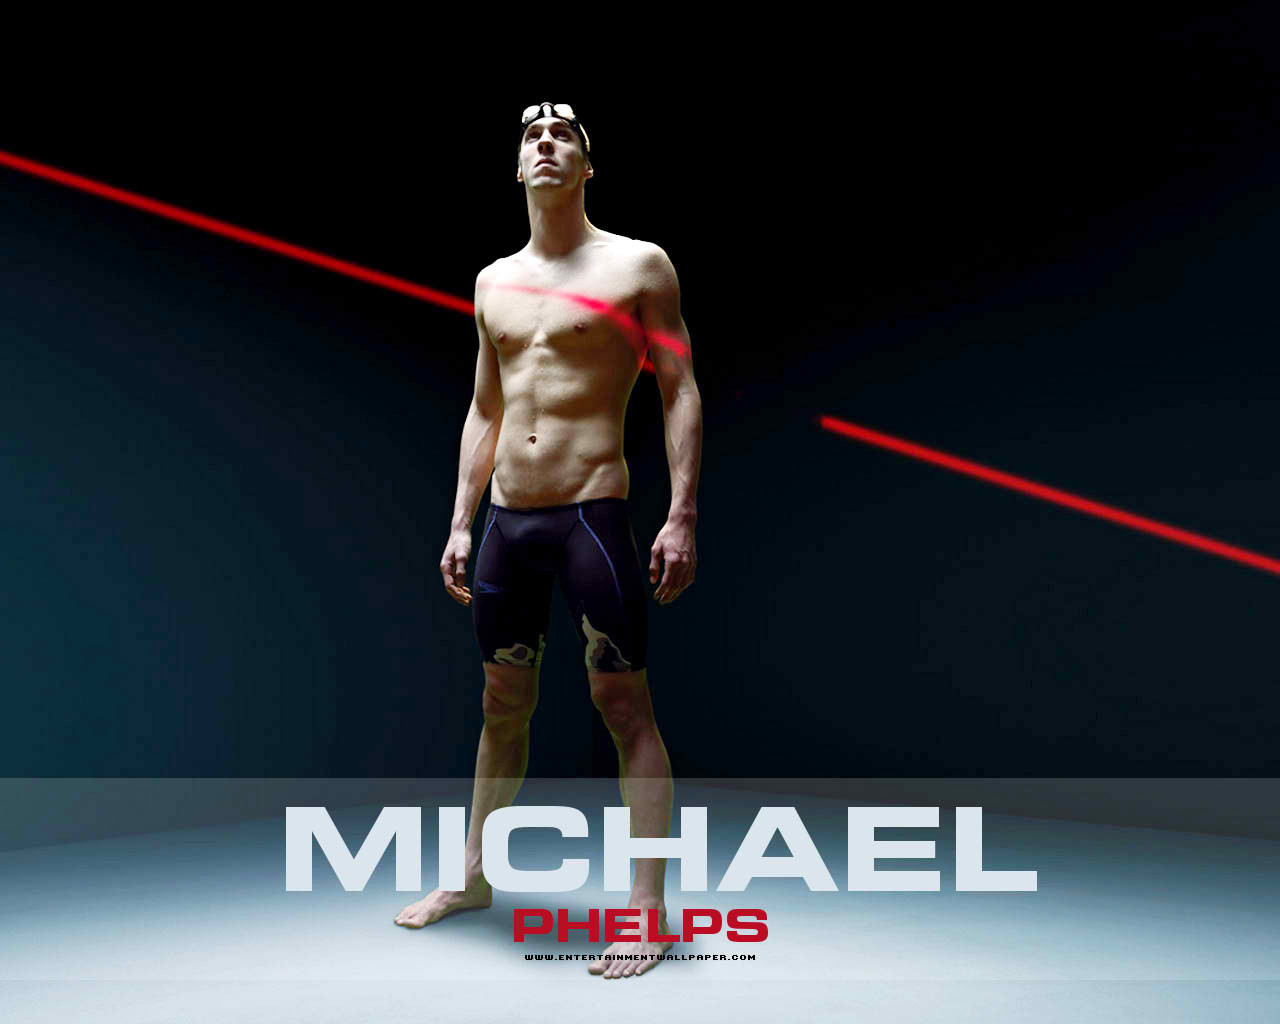 michael phelps bench press Michael phelps (born on 30th june michael phelps swimming and gym workout compound movements like deadlifts, bench press (375 pounds maximum) and squats.